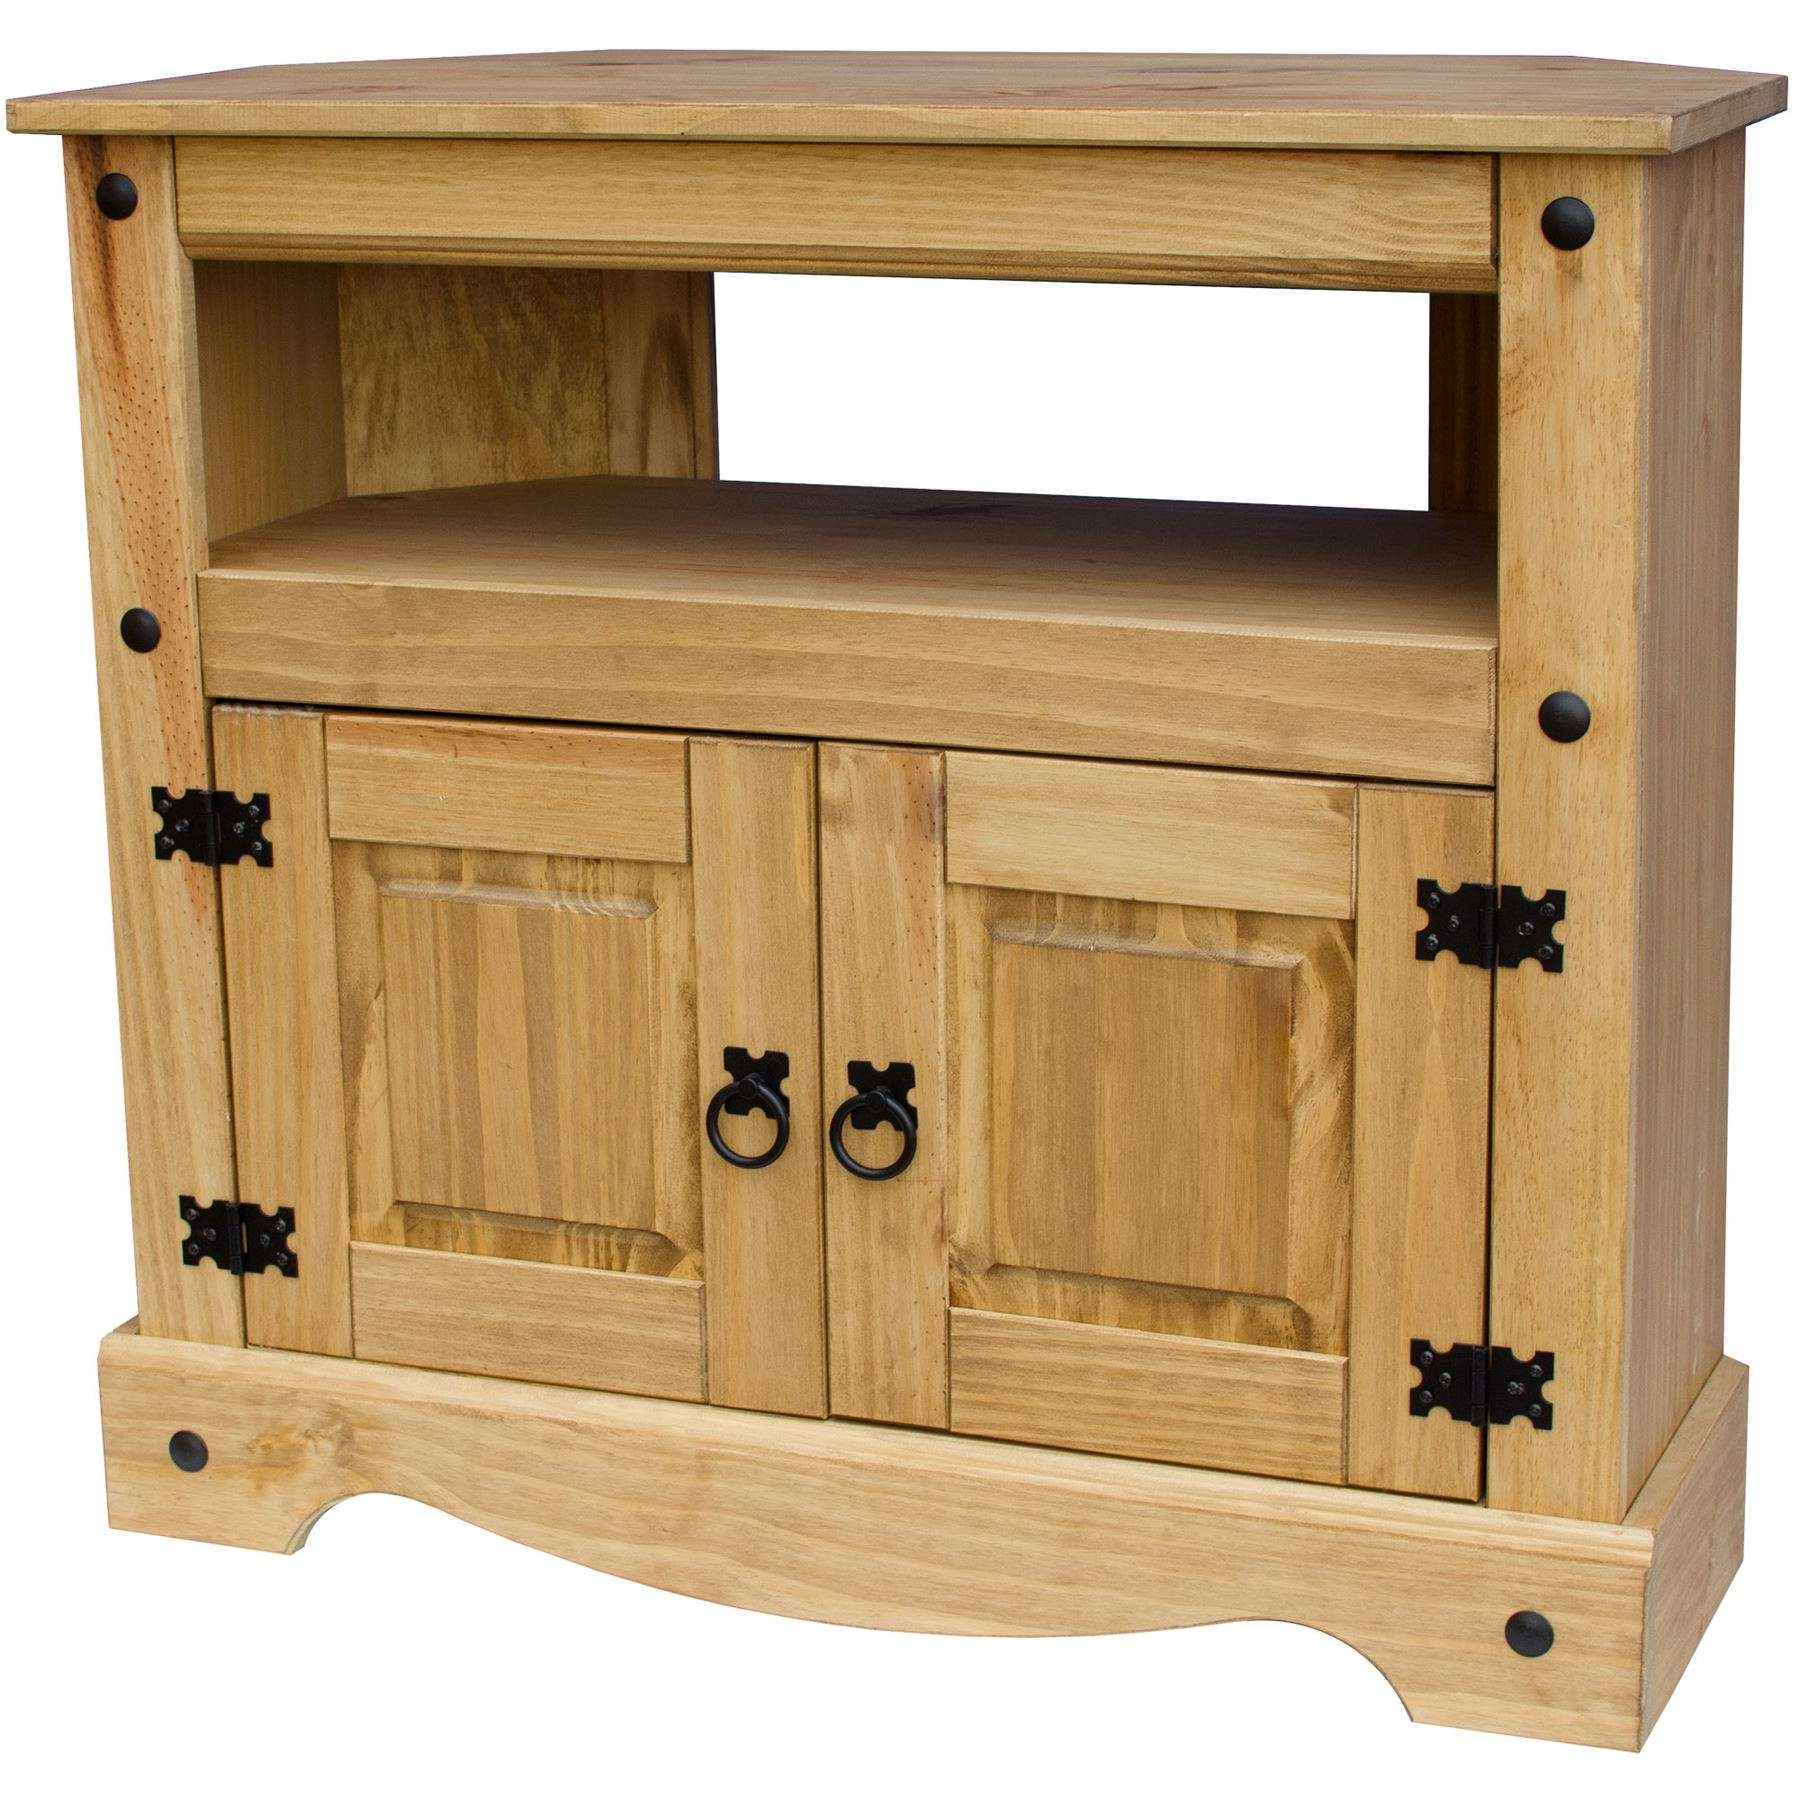 Corona Panama Tv Cabinet Media Dvd Unit Solid Pine Wood Mexican Throughout Rustic Corner Tv Cabinets (View 13 of 20)